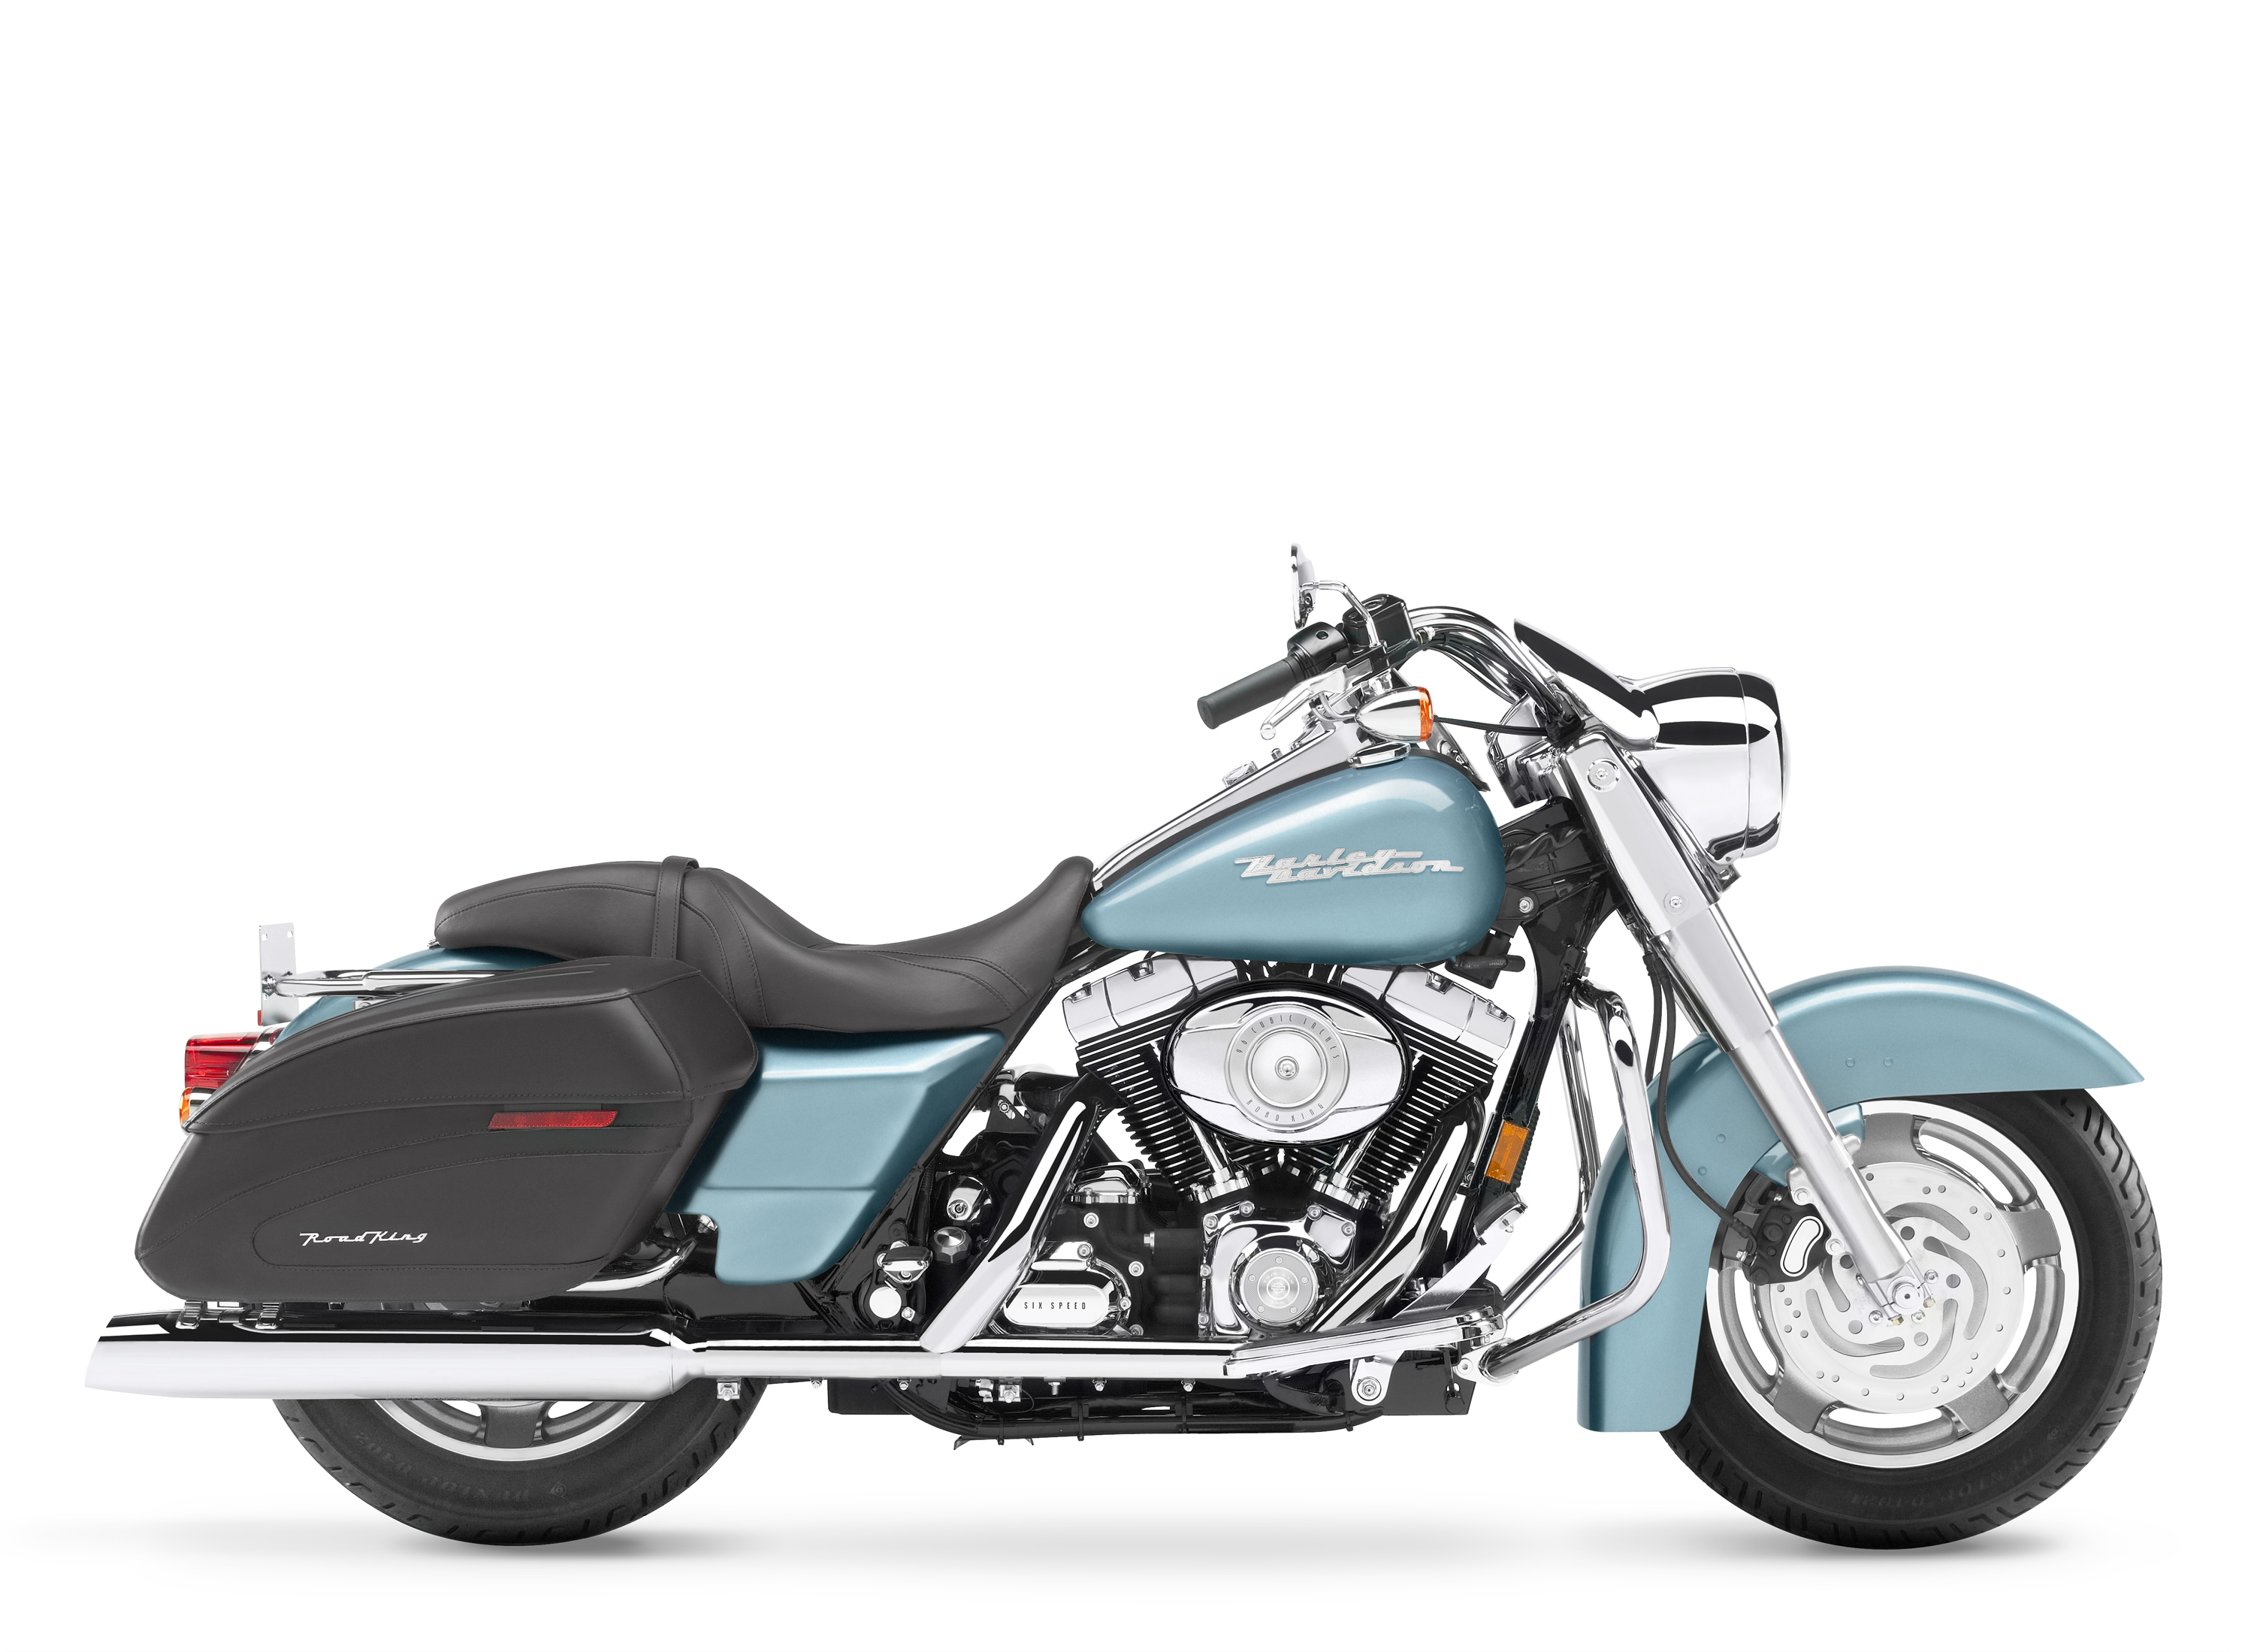 Harley-Davidson FLHRS Road King Custom 2005 images #80471